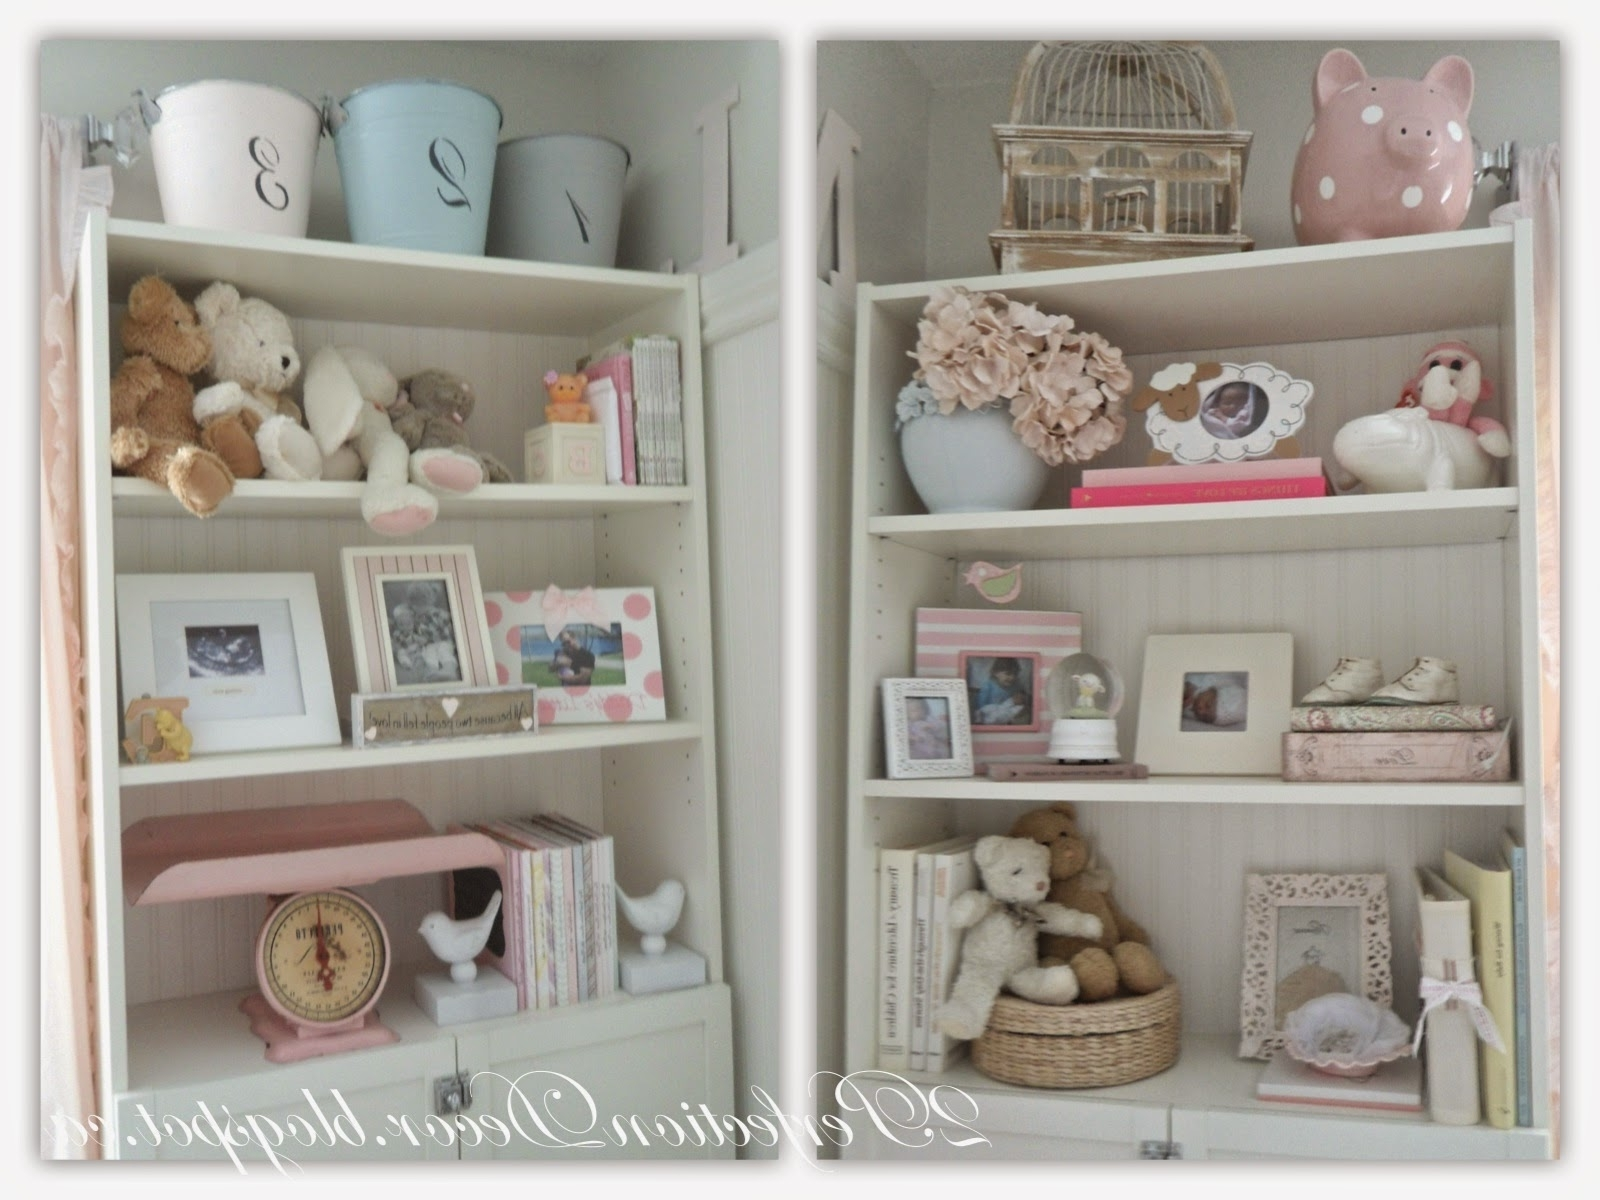 Favorite Nursery Bookcases Intended For Furniture Home: Nursery Bookcase Ikea Beautiful Image Design Sweet (View 8 of 15)